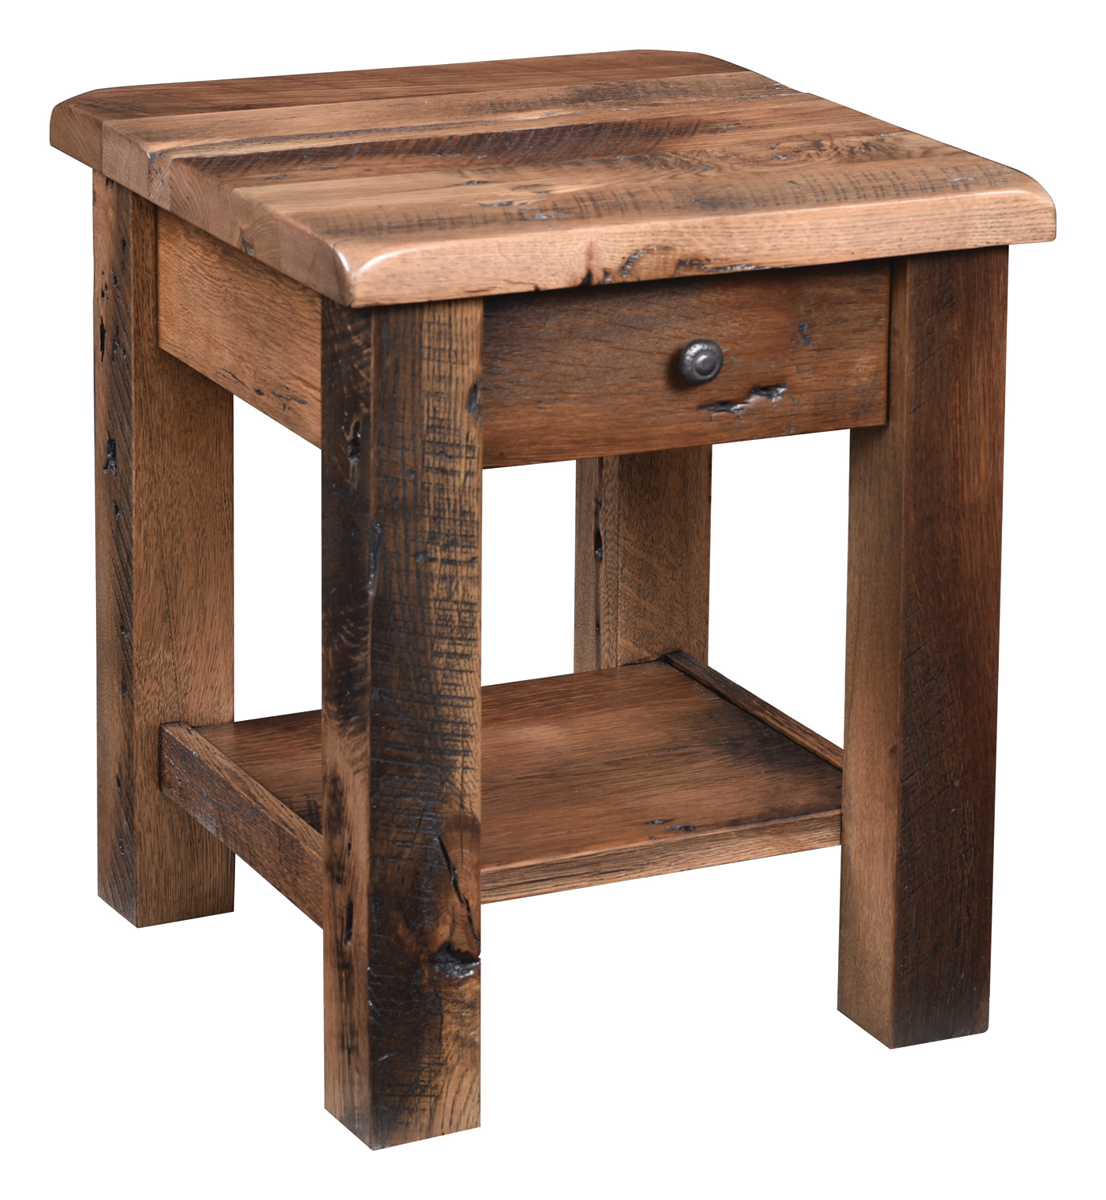 Excellent Rainier Reclaimed Barnwood End Table Interior Design Ideas Gentotryabchikinfo